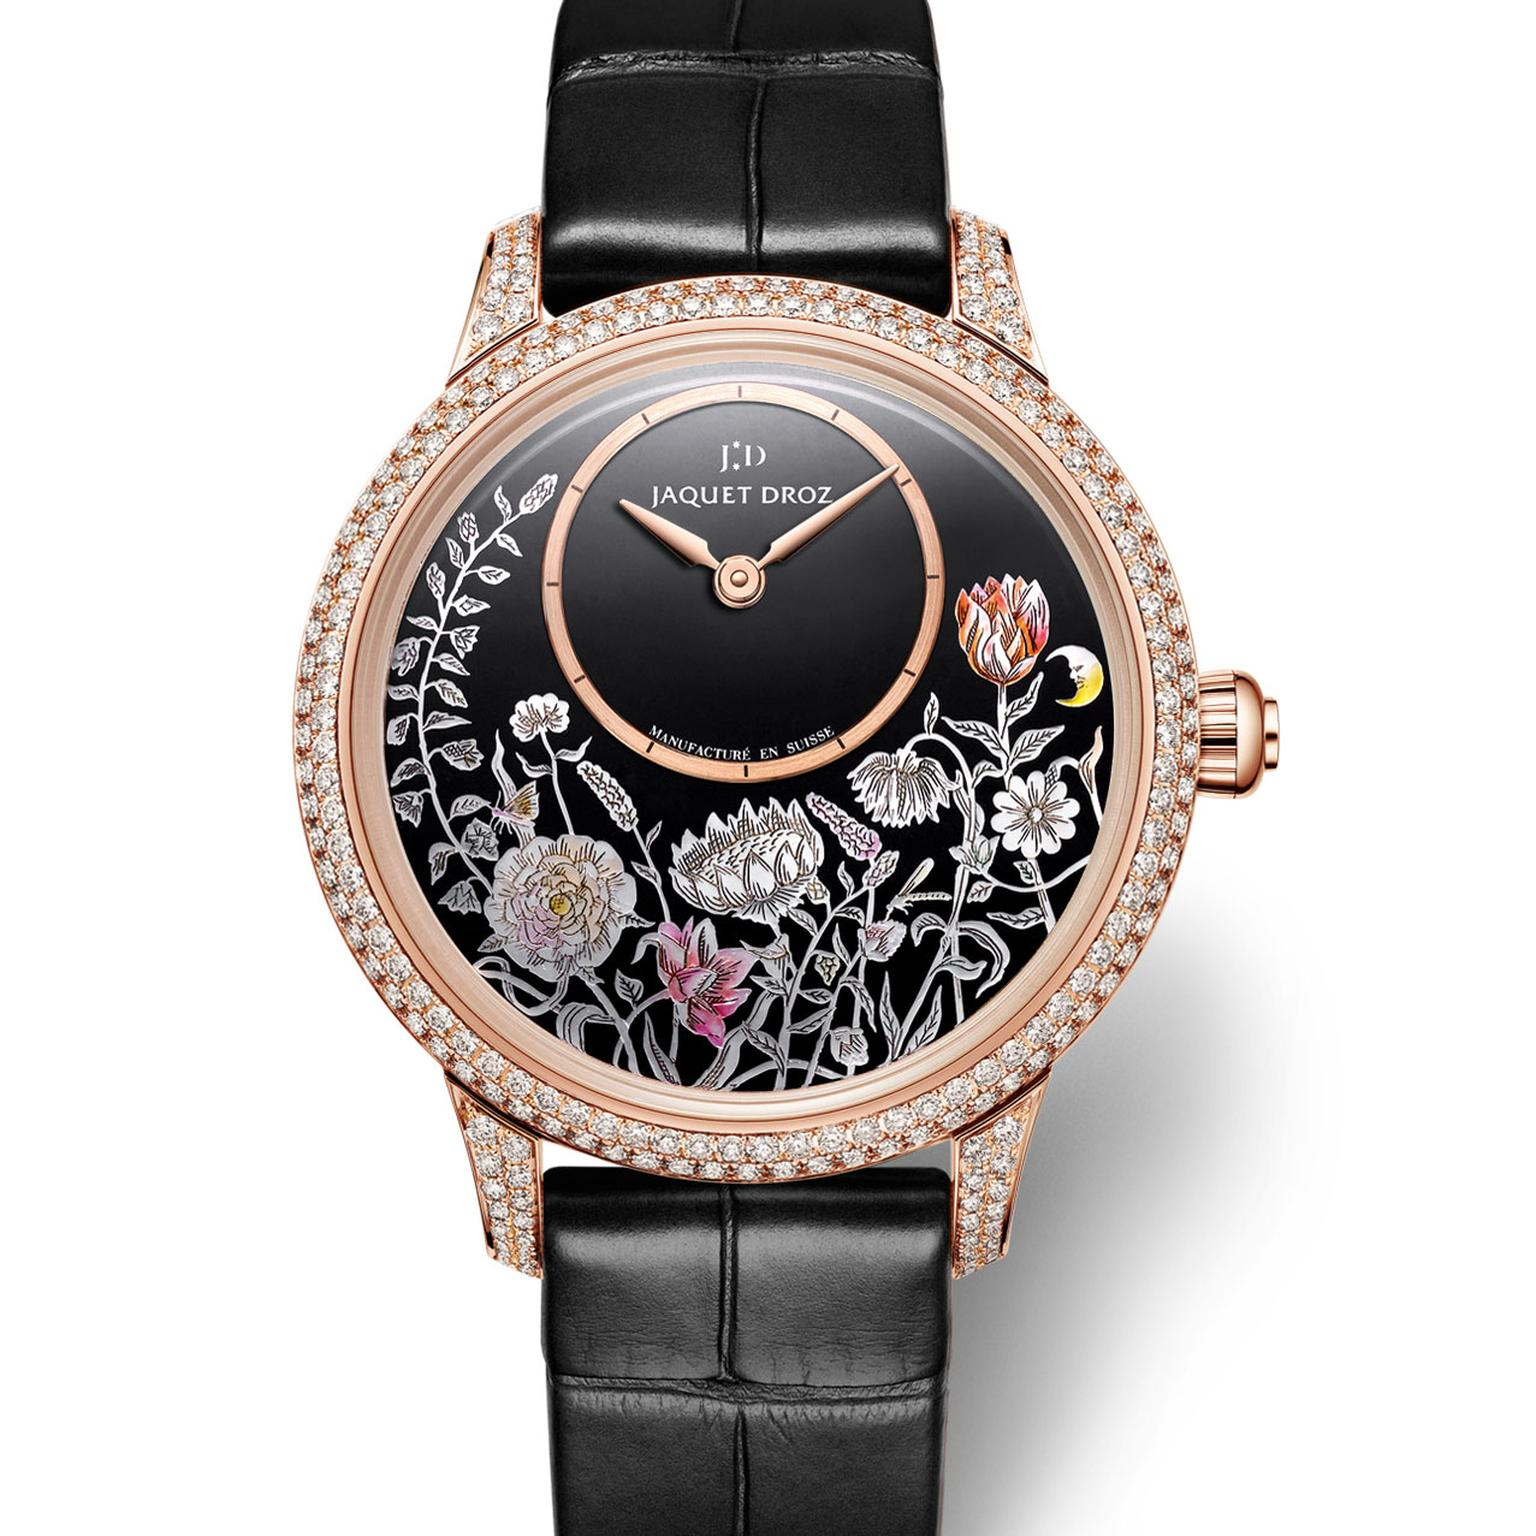 Jaquet Droz Heure Minute Thousand Year Lights